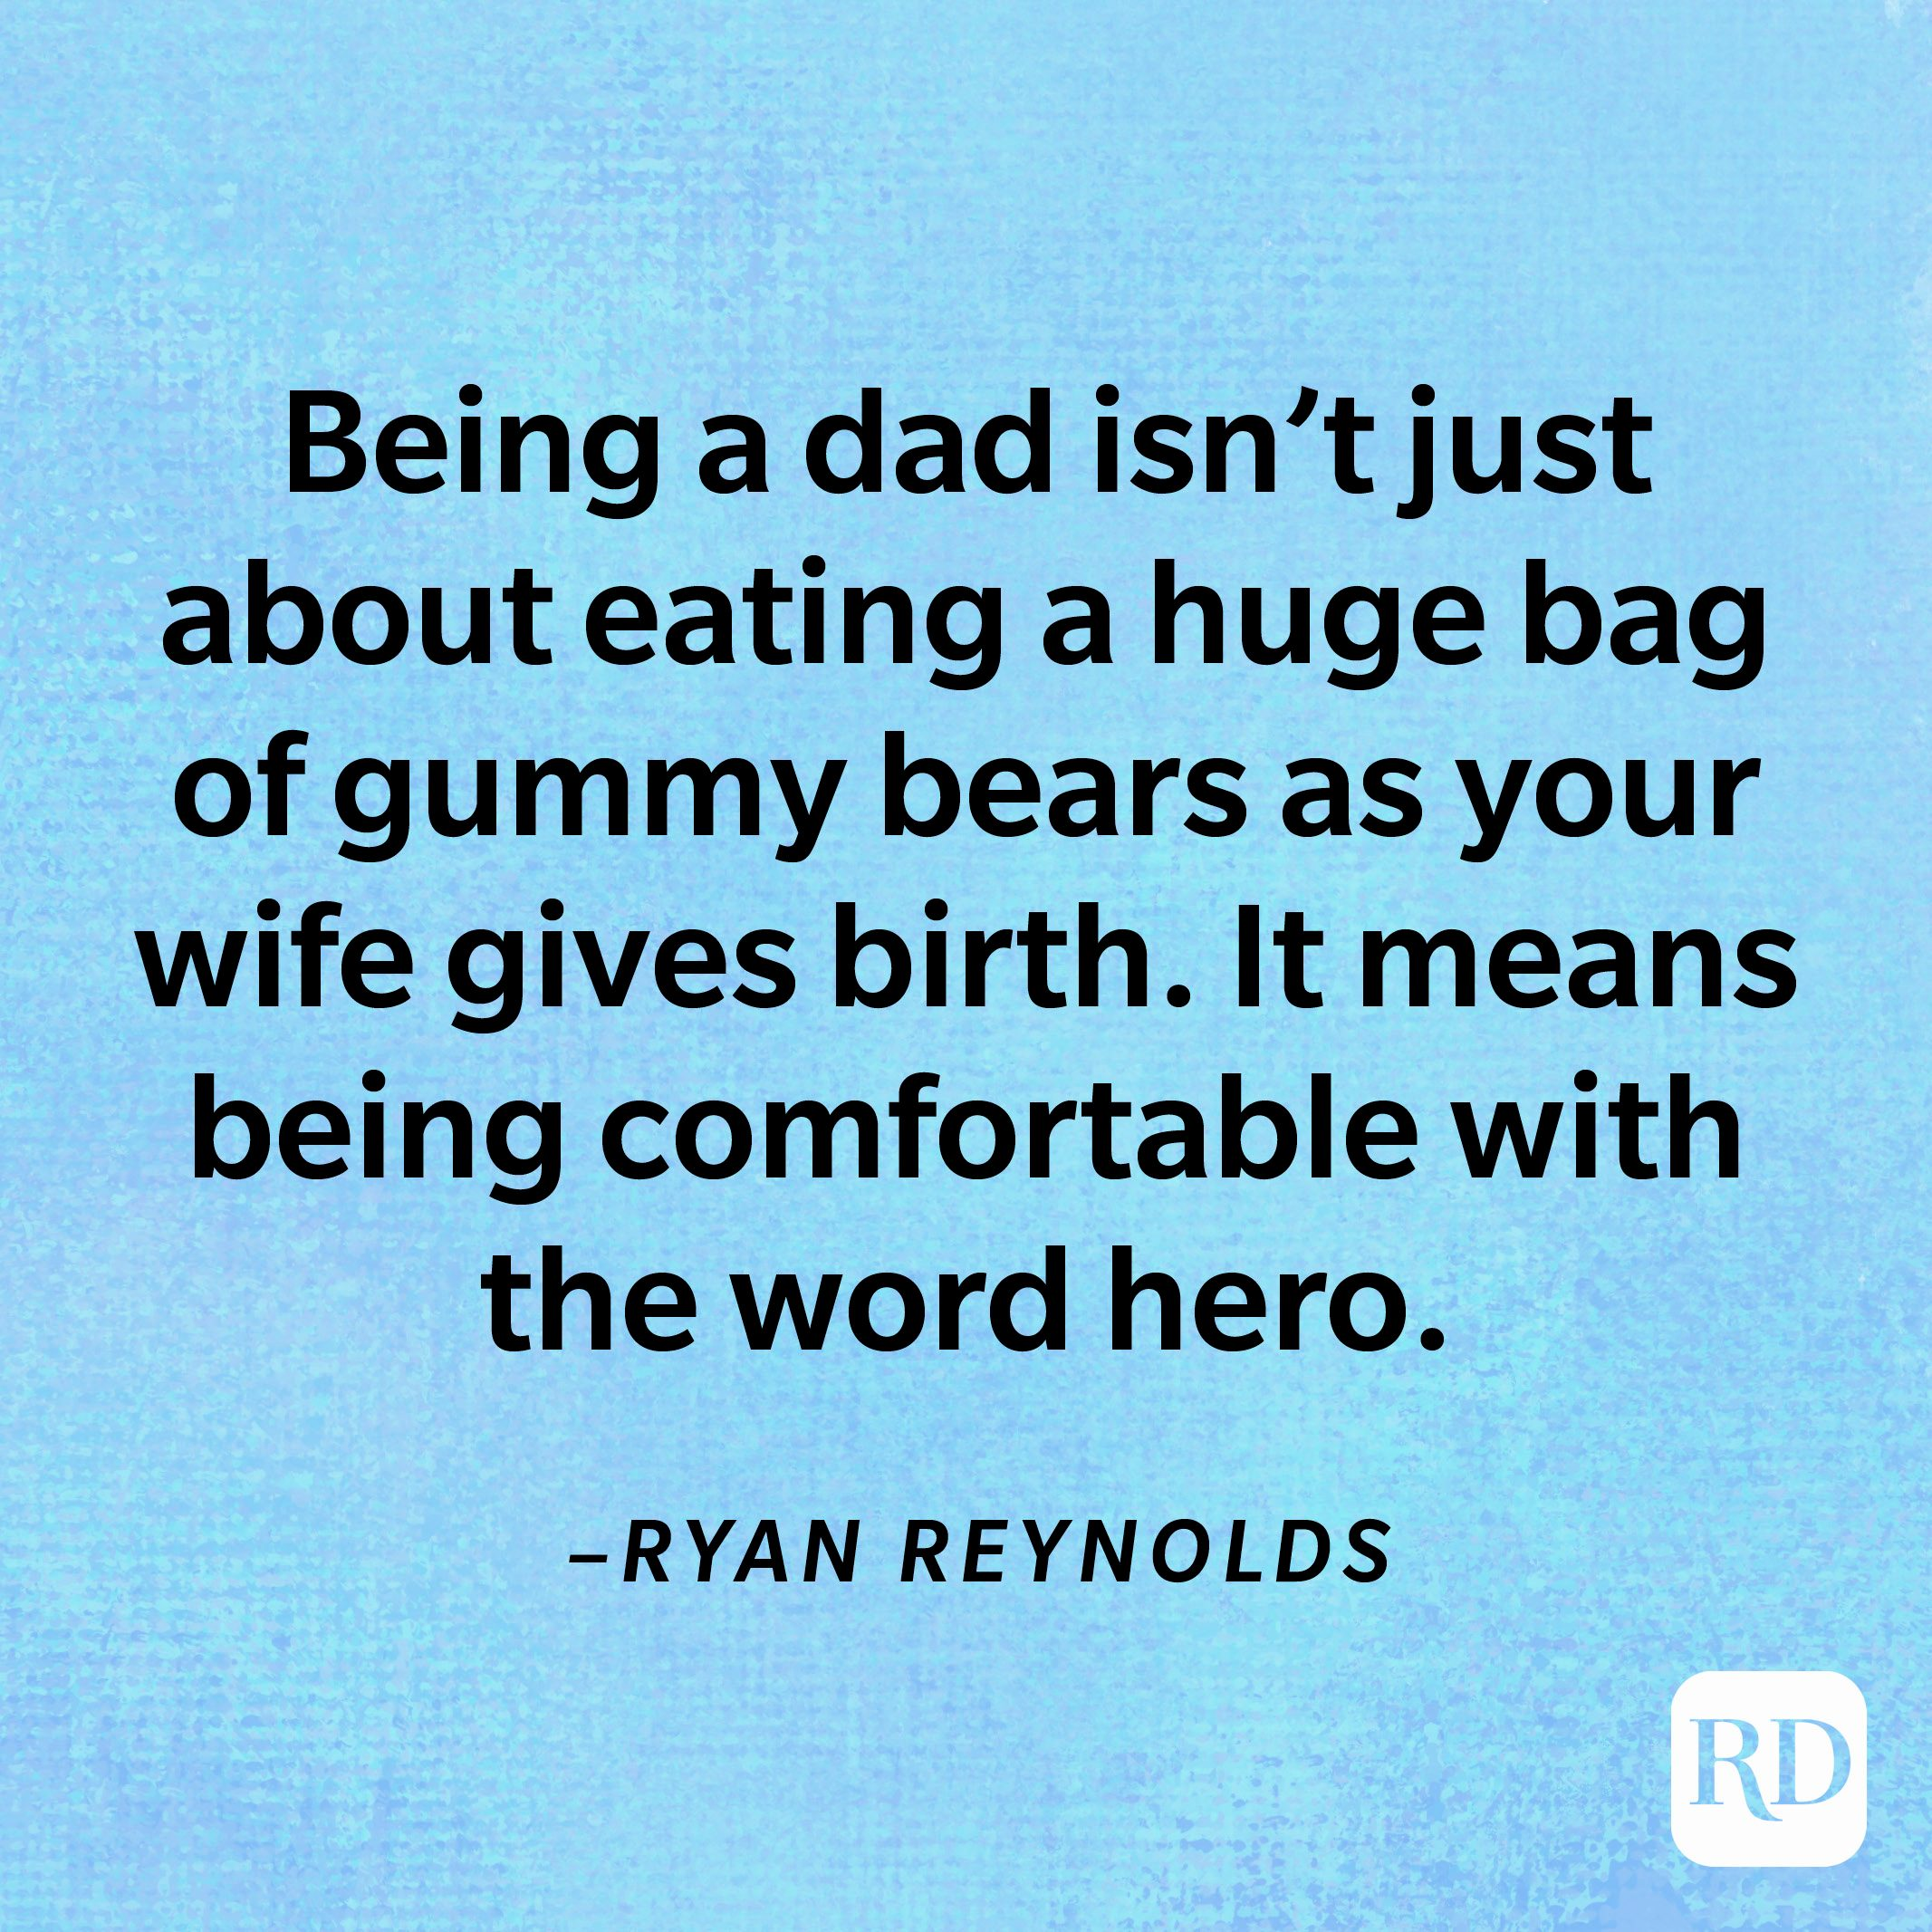 """""""Being a dad isn't just about eating a huge bag of gummy bears as your wife gives birth. It means being comfortable with the word hero.""""—Ryan Reynolds"""